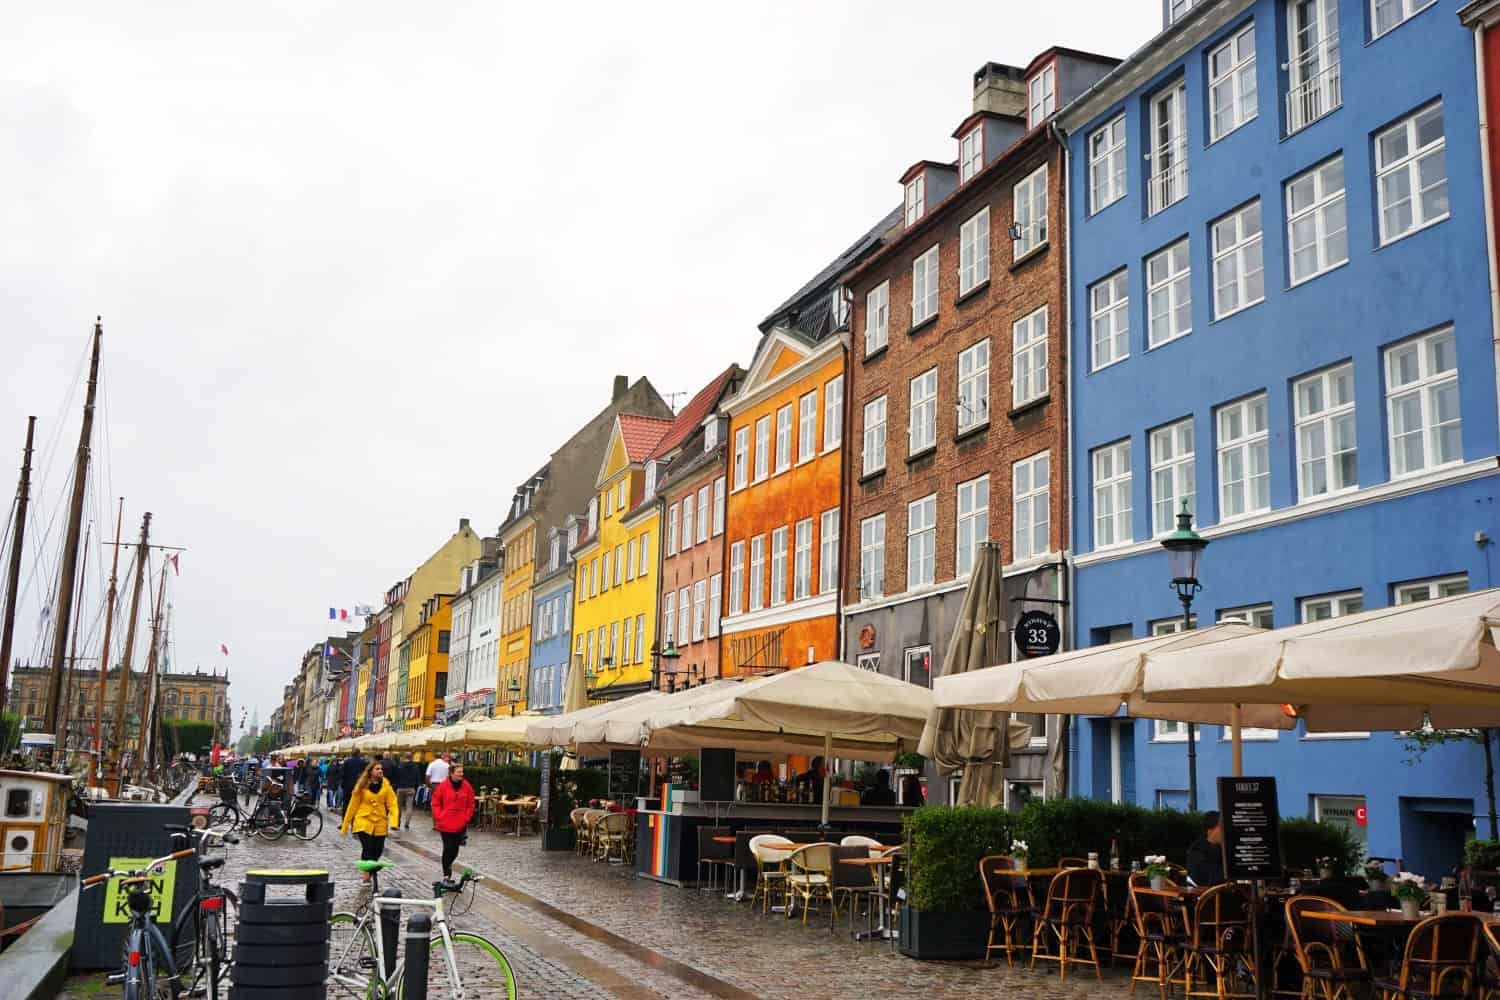 Nyhavn Copenhagen in the rain